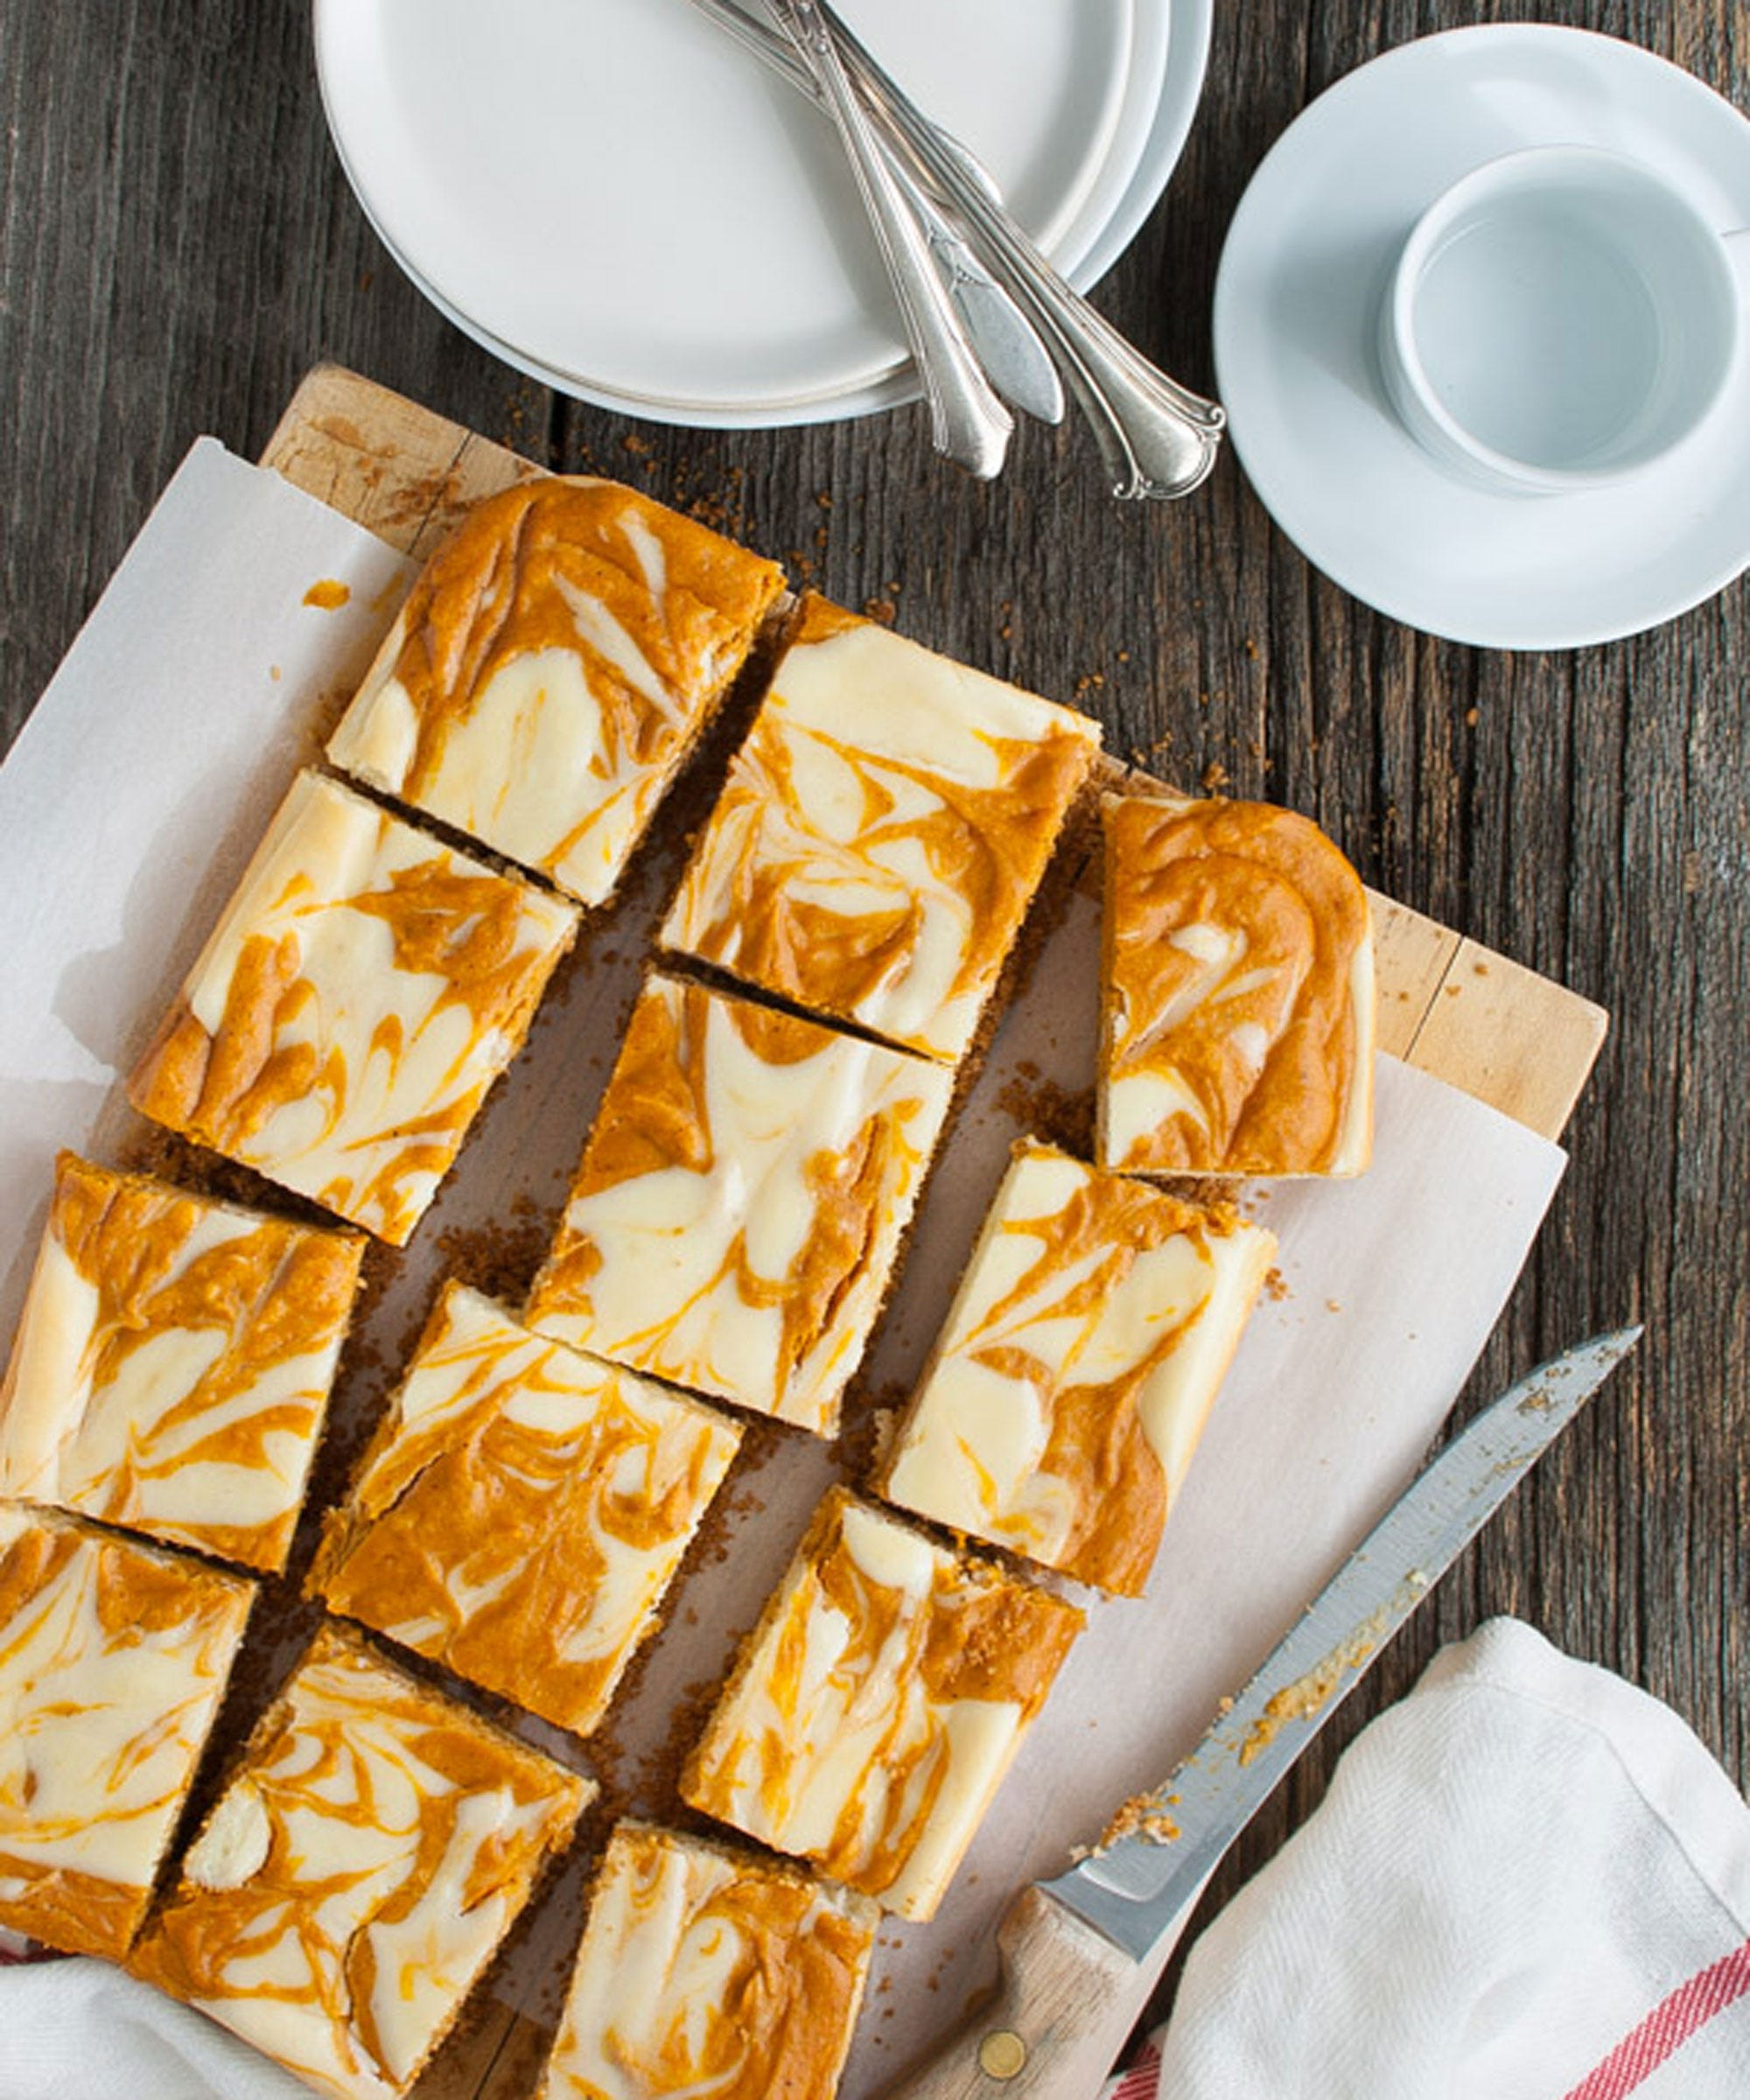 10 Next-Level Pumpkin Cheesecake Recipes